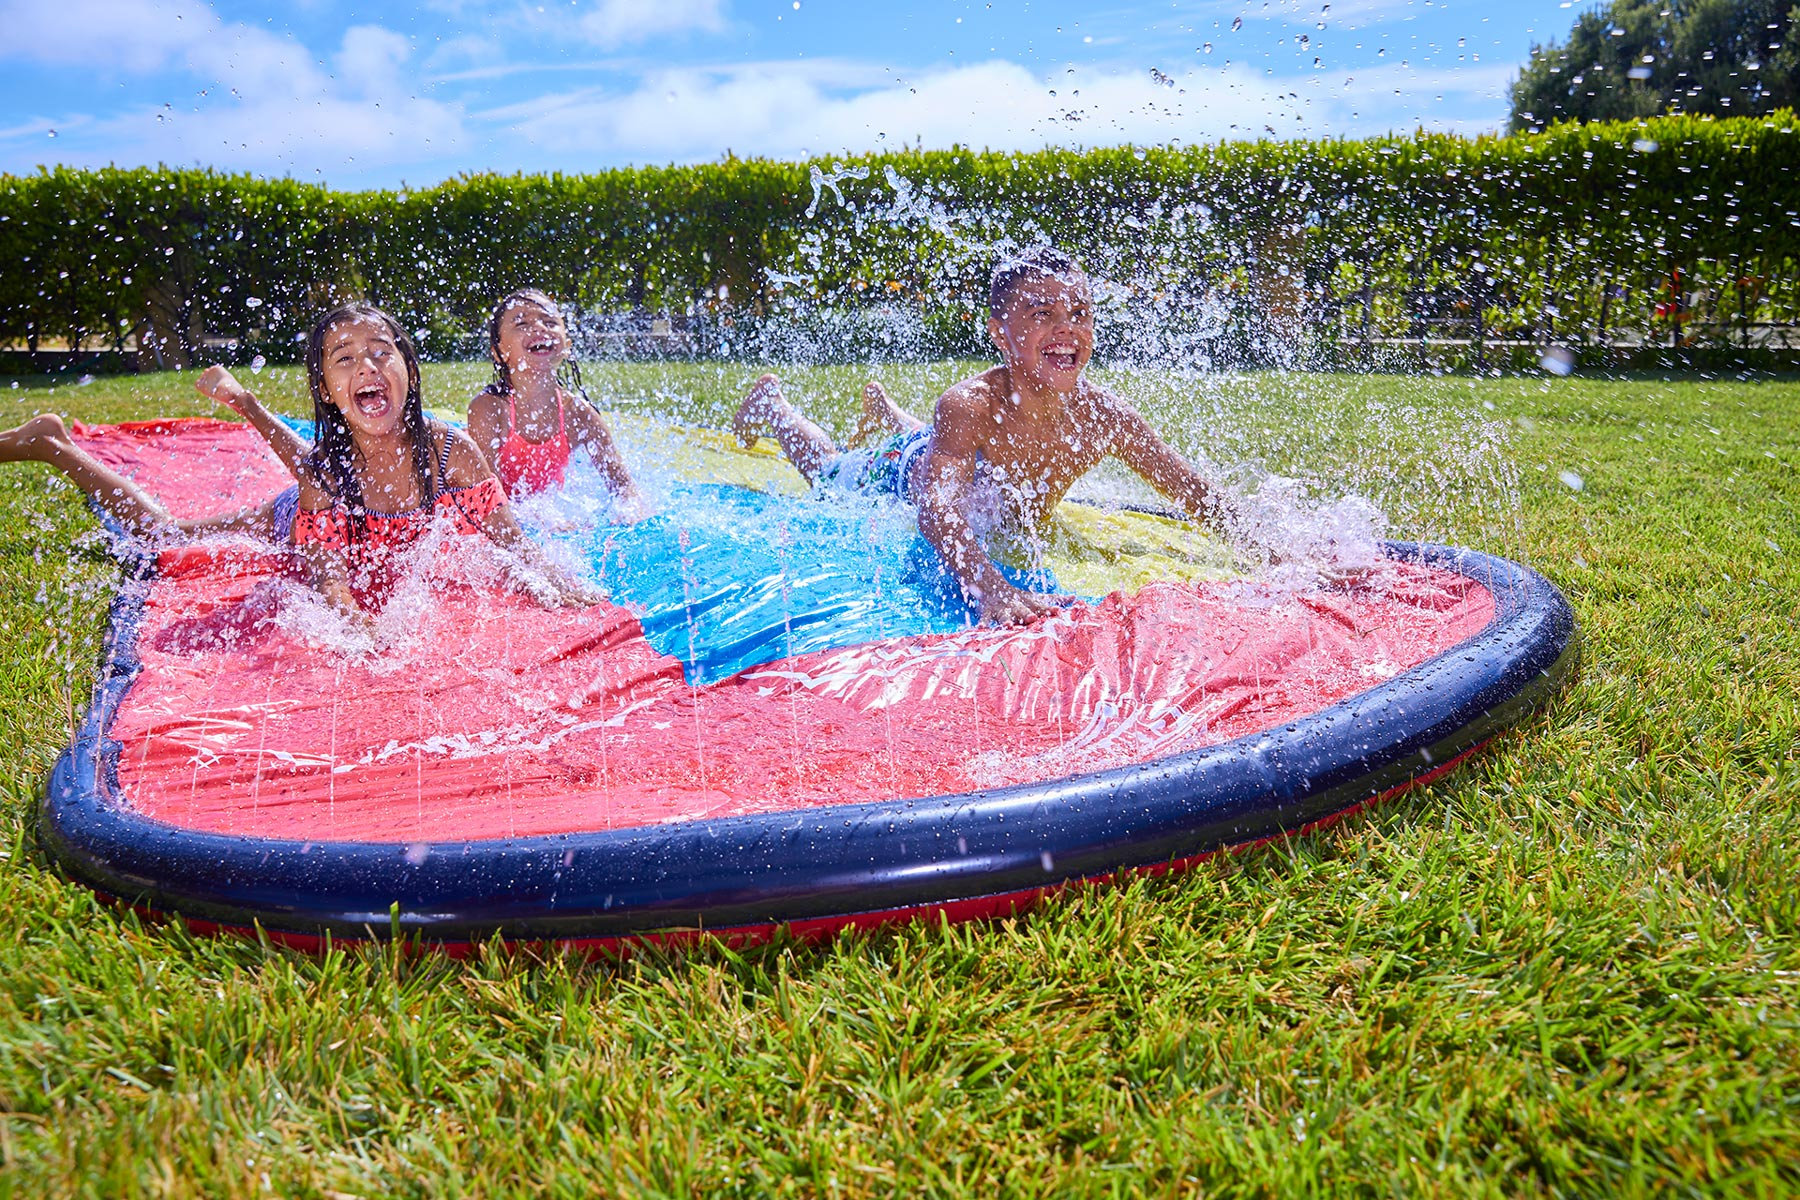 Wham-O Slip & Slide is a lot of Fun. Toy Company Lifestyle